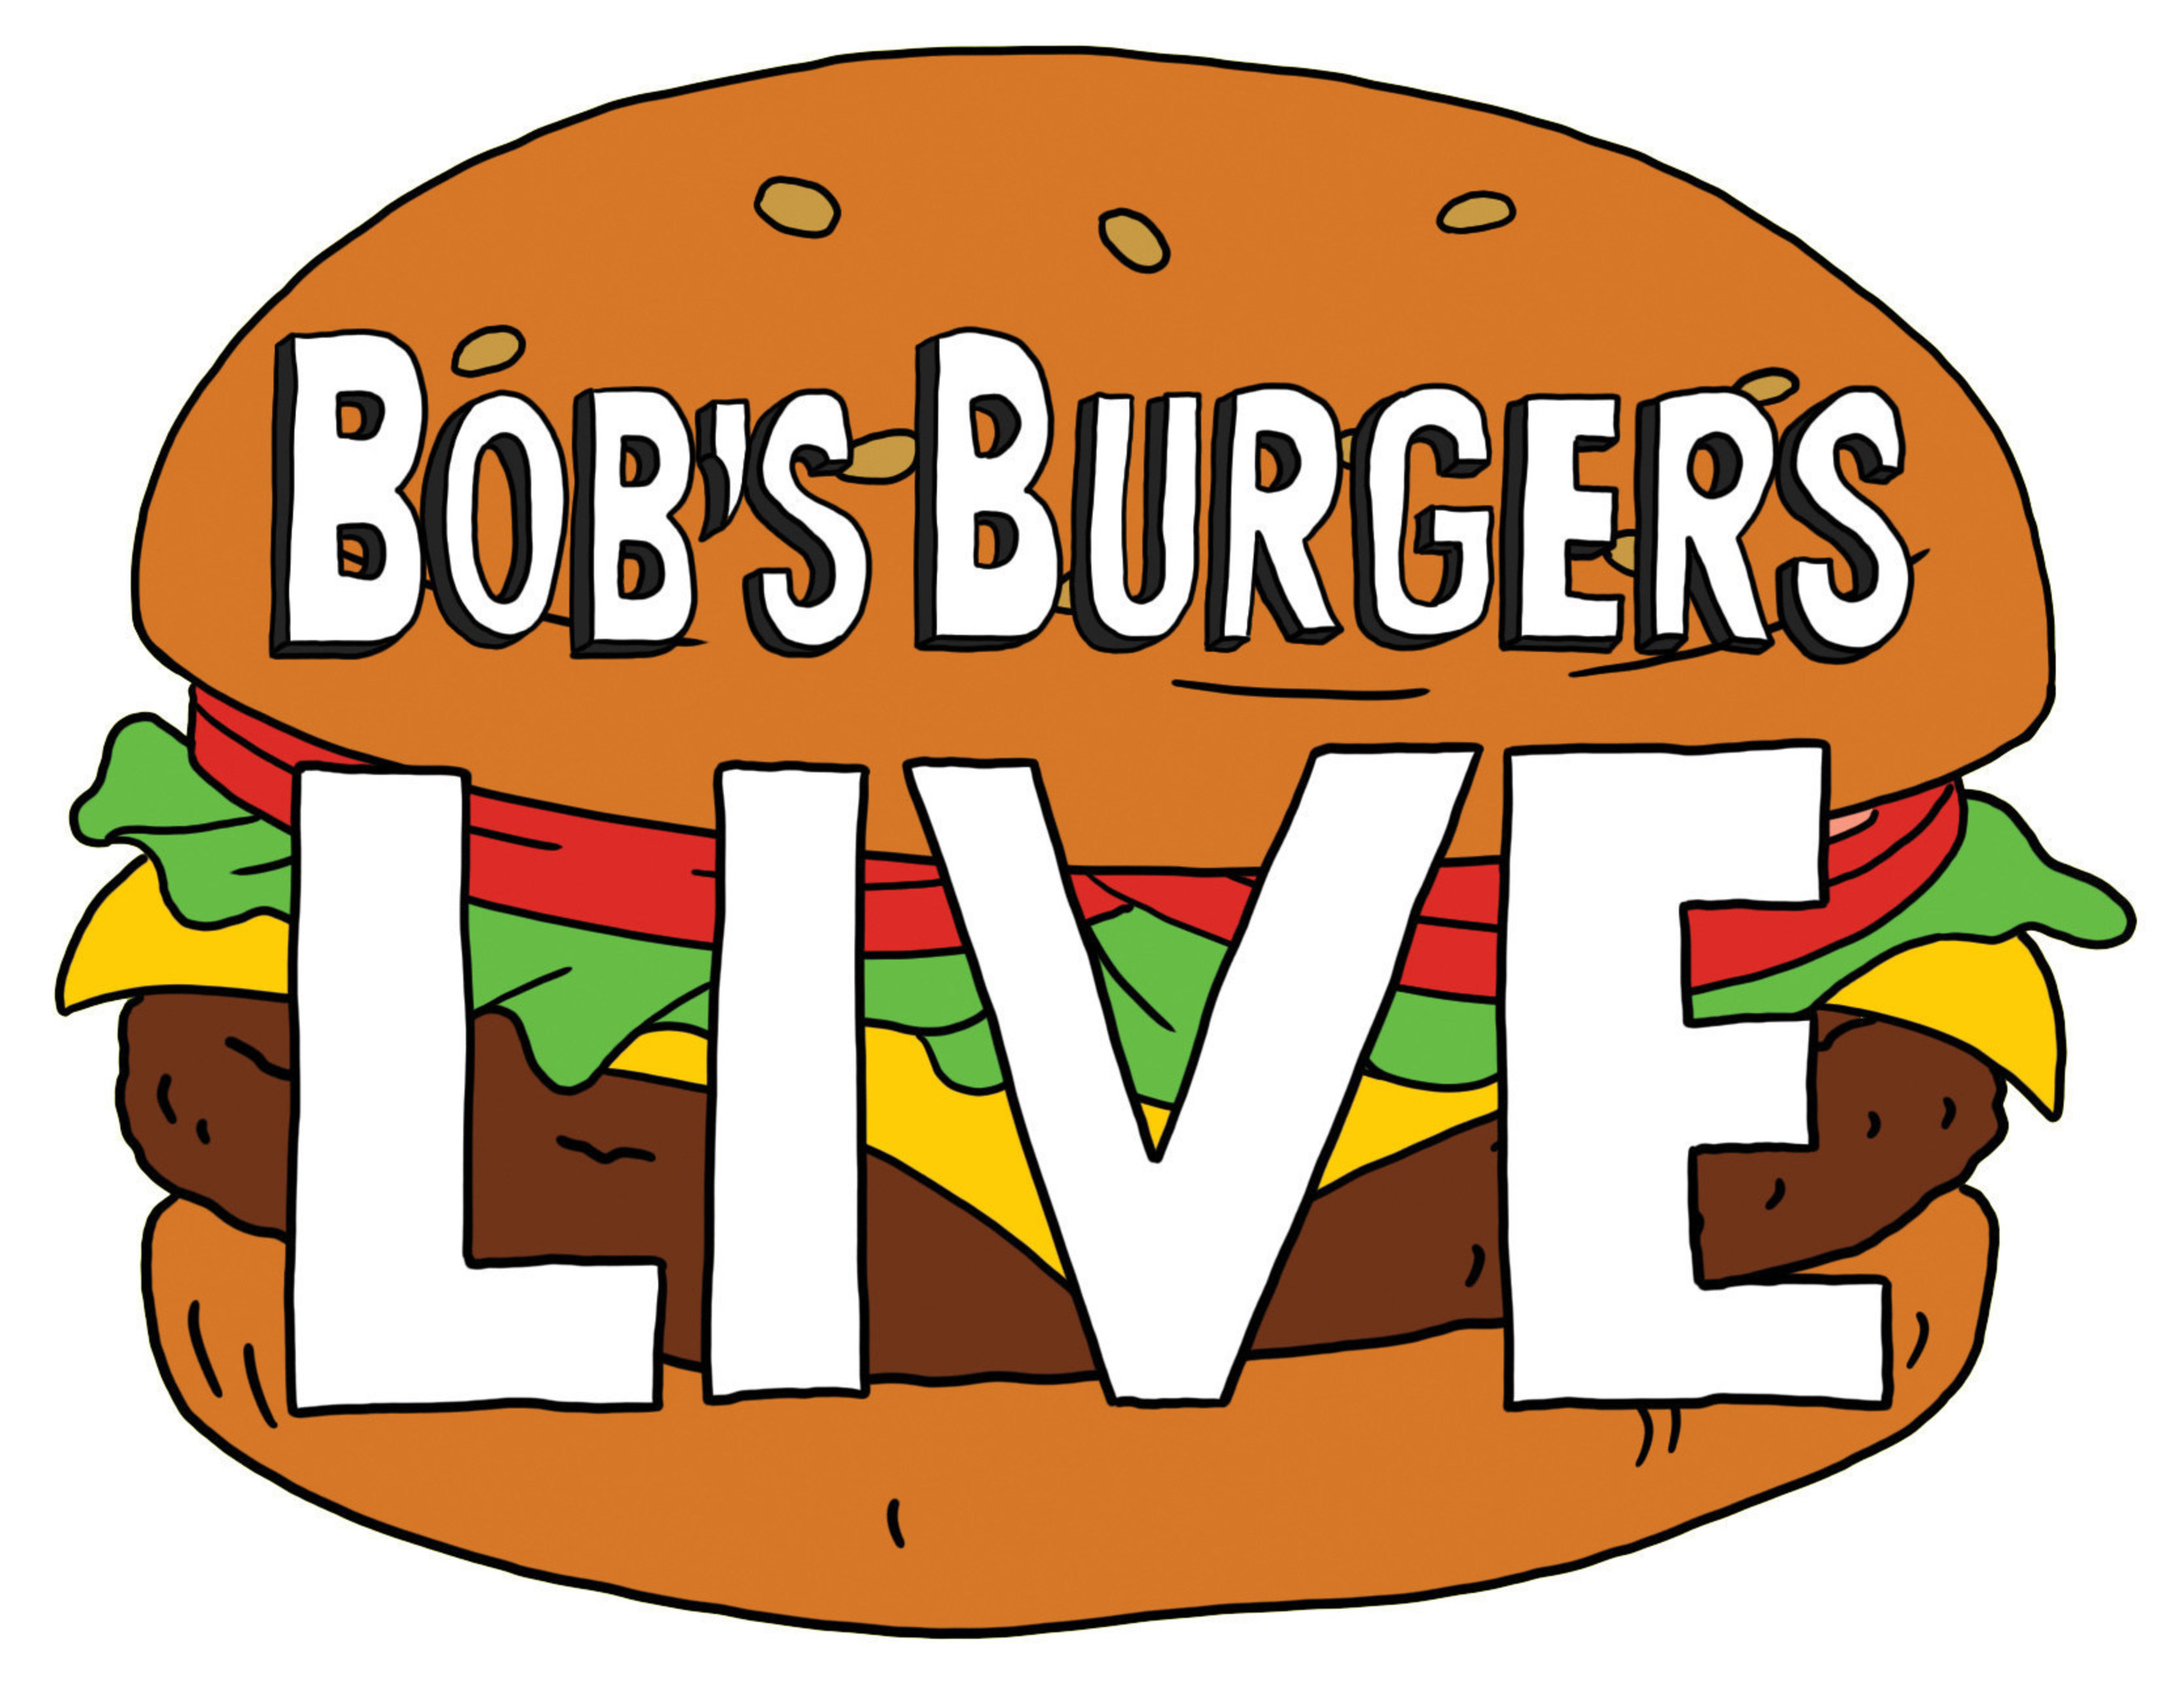 BOB'S BURGERS LIVE! RETURNS TO LOS ANGELES ON APRIL 29 AT THE WILTERN FOLLOWING SOLD-OUT 8-CITY TOUR IN 2015